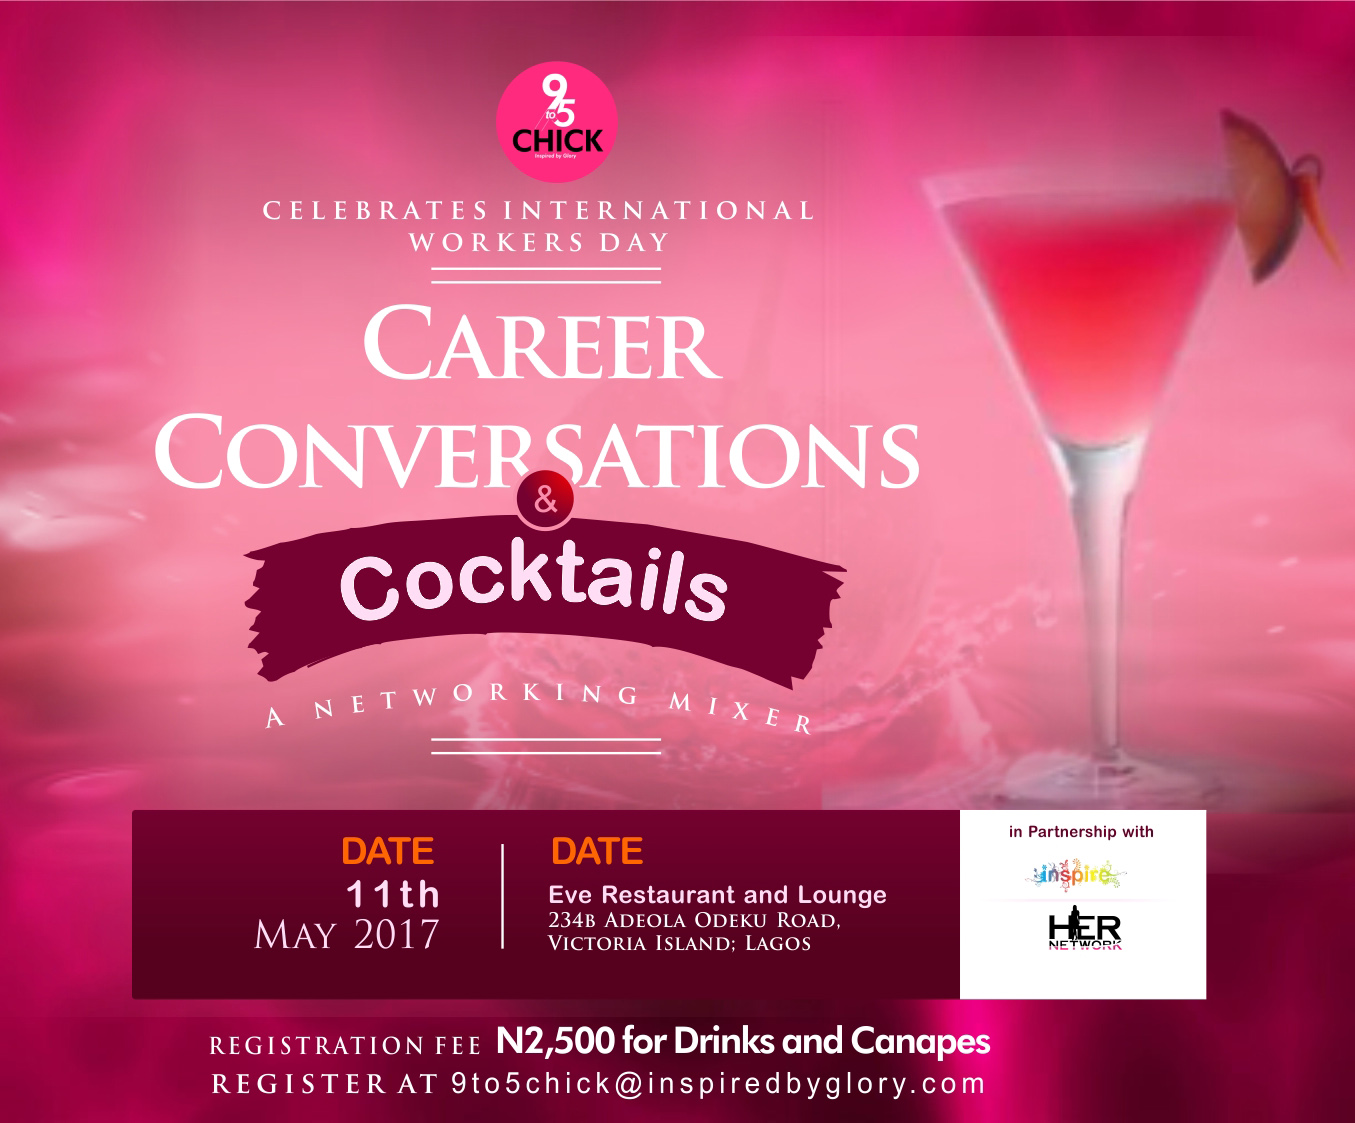 Career Conversations and Cocktails! The Premier Networking Event for Professional Women has arrived!